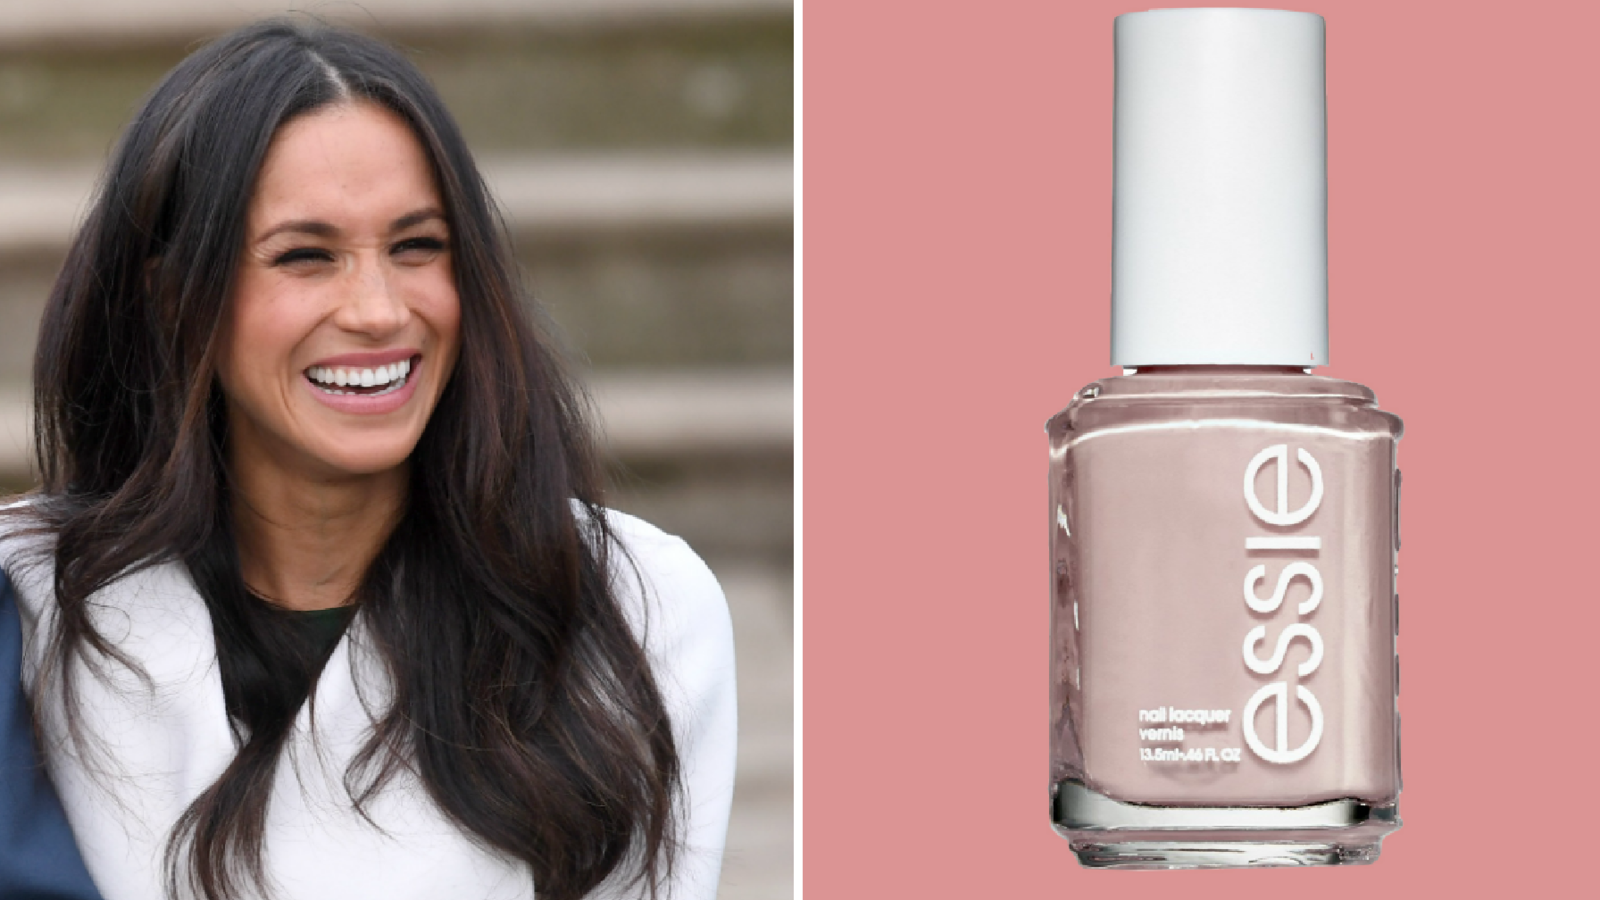 We Re 99 Positive Meghan Markle Will Wear One Of These Essie Nail Polishes To Her Wedding Essie Nail Polish Wedding Nail Polish Essie Nail